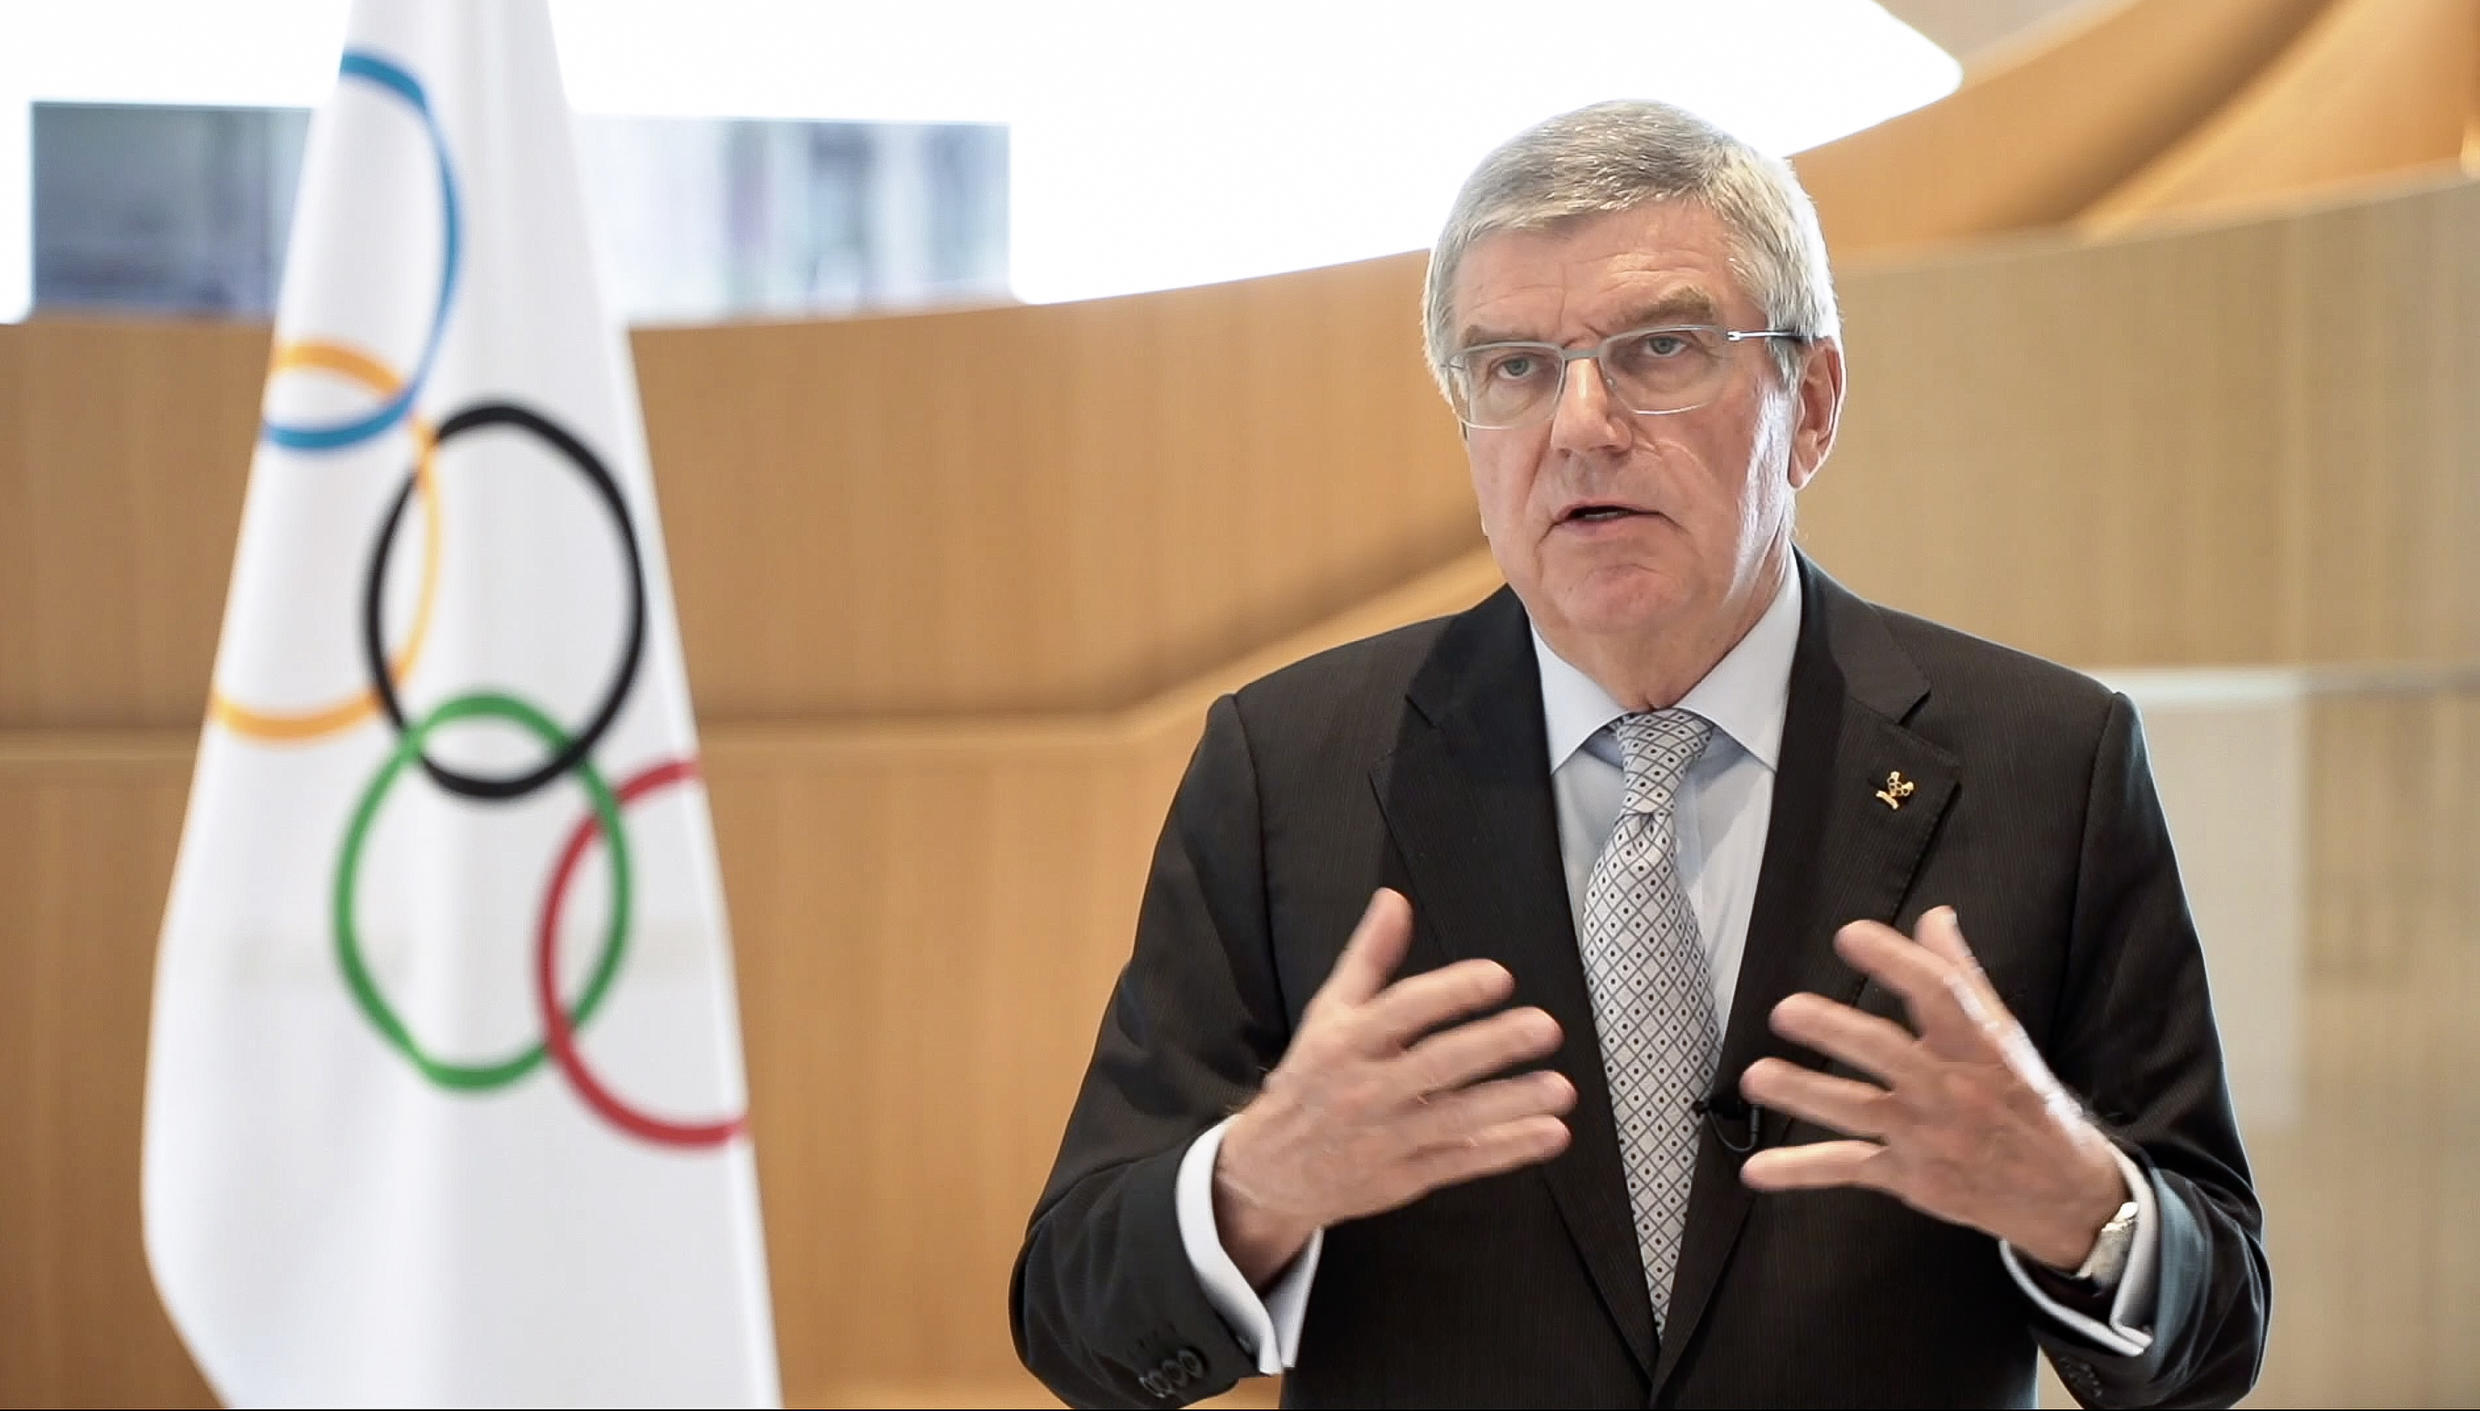 Thomas Bach, head of the International Olympic Committee, said flexibility would be the key to a successful rescheduling and reorganisation of the 2020 Olympic Games.